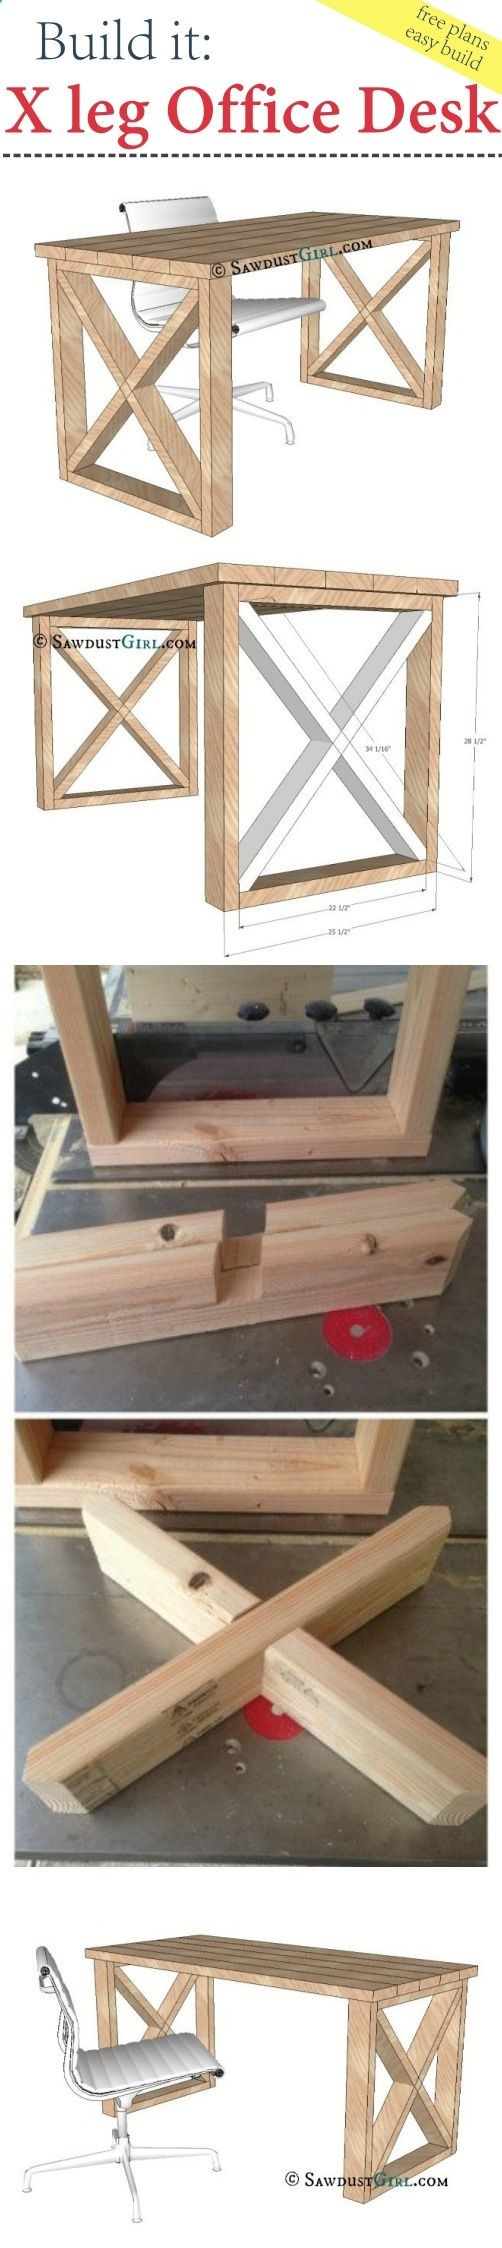 Tedu0027s Woodworking Plans   X Leg Office Desk   Free Plans   Get A Lifetime  Of Project Ideas U0026 Inspiration! Step By Step Woodworking Plans